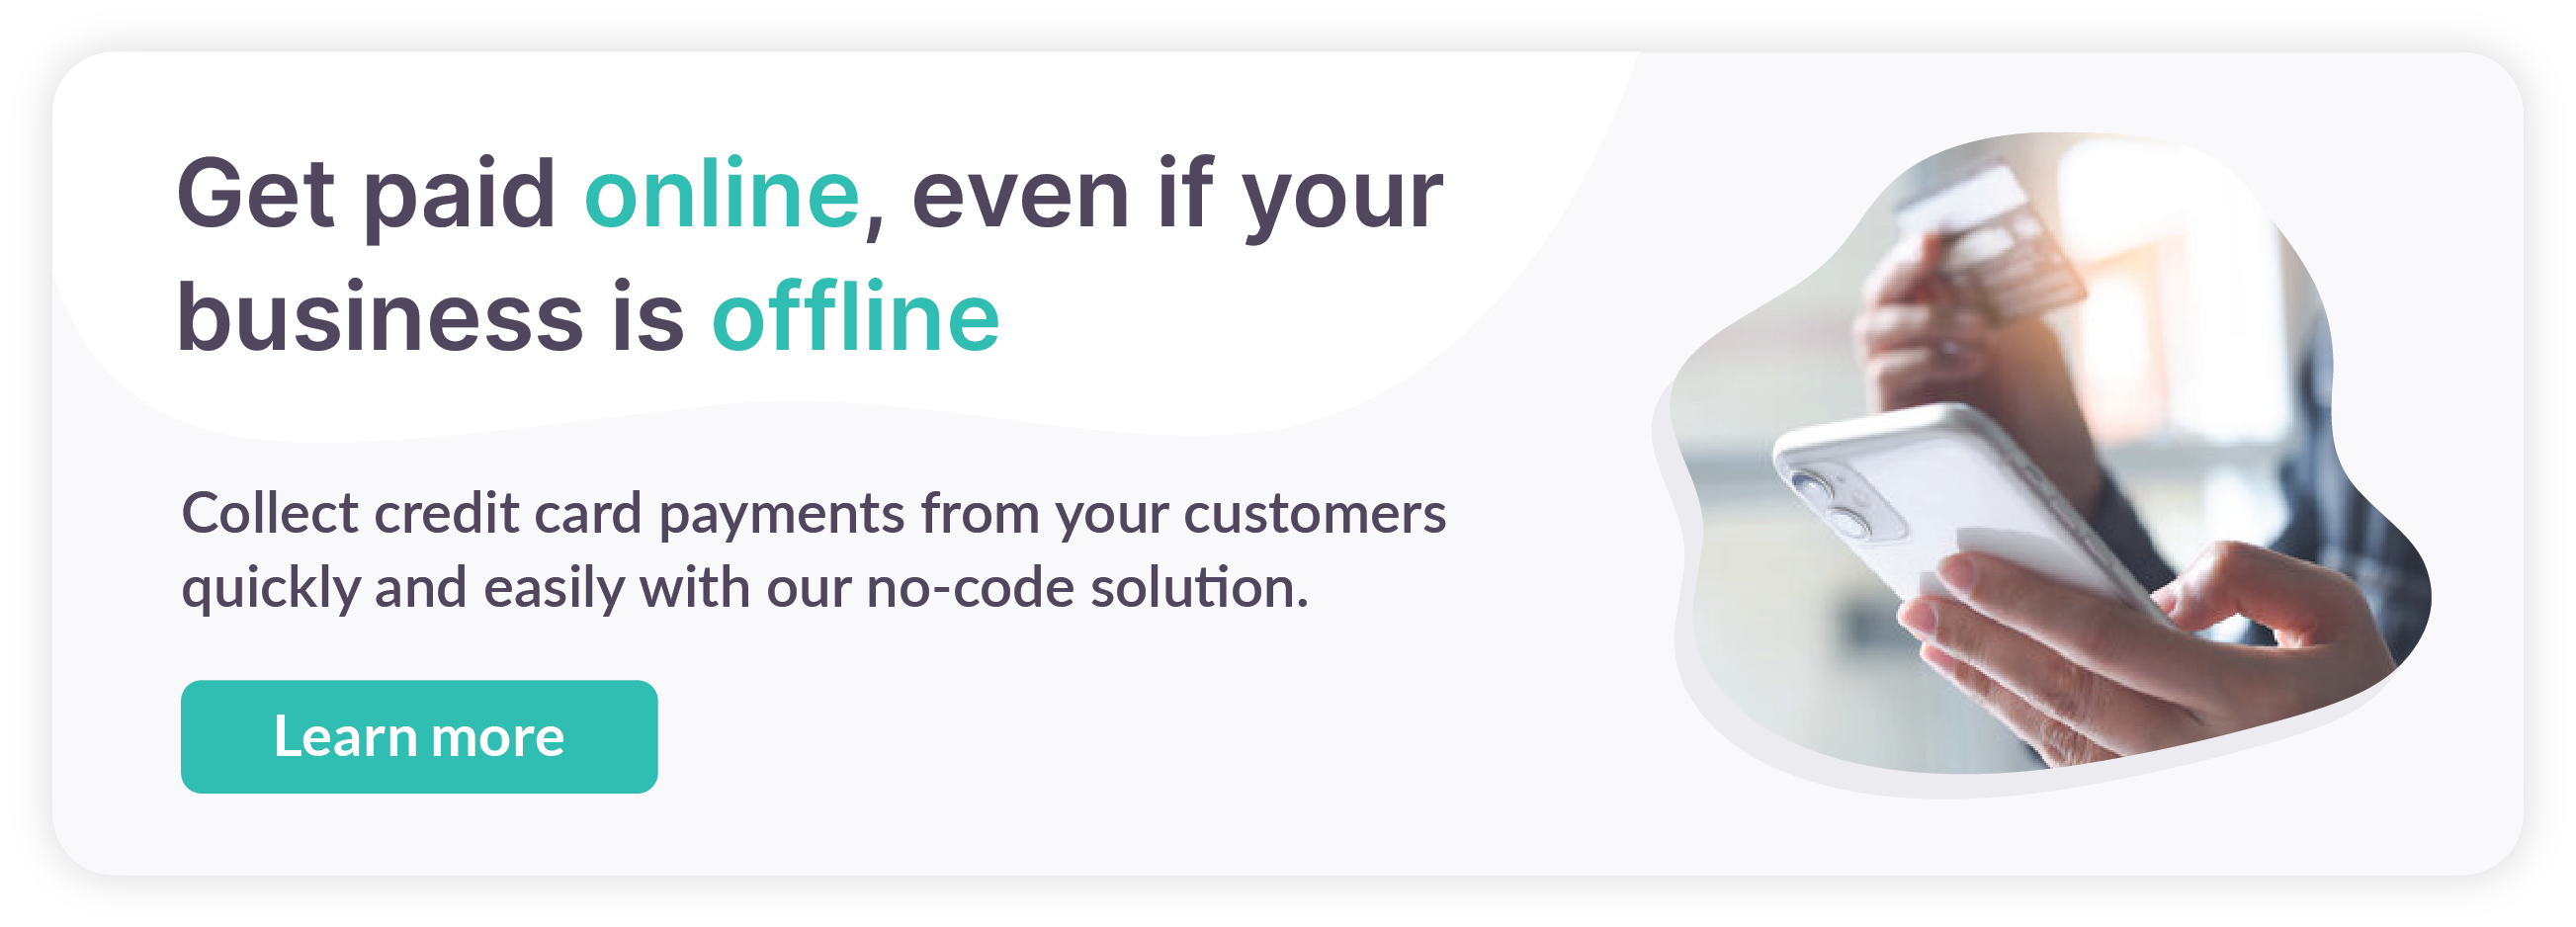 Limited time offer: Collect payments completely free with 0% fee for you and your customers